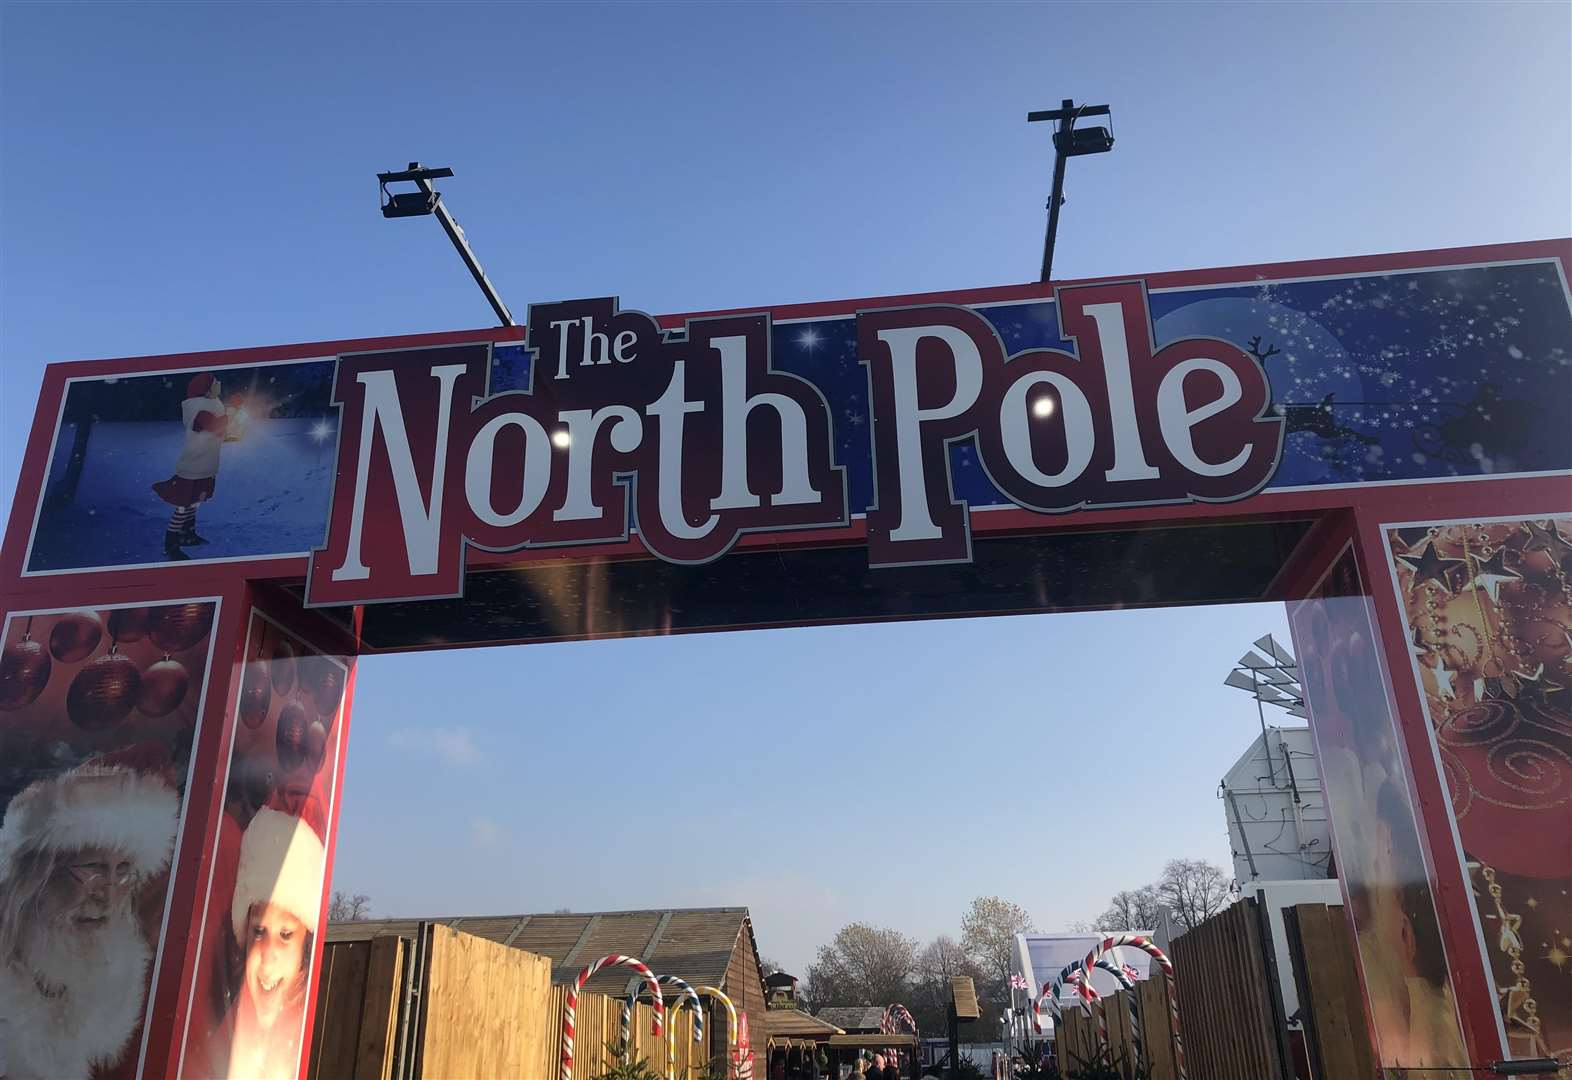 Festive fun for all the family as The North Pole comes to Cambridge